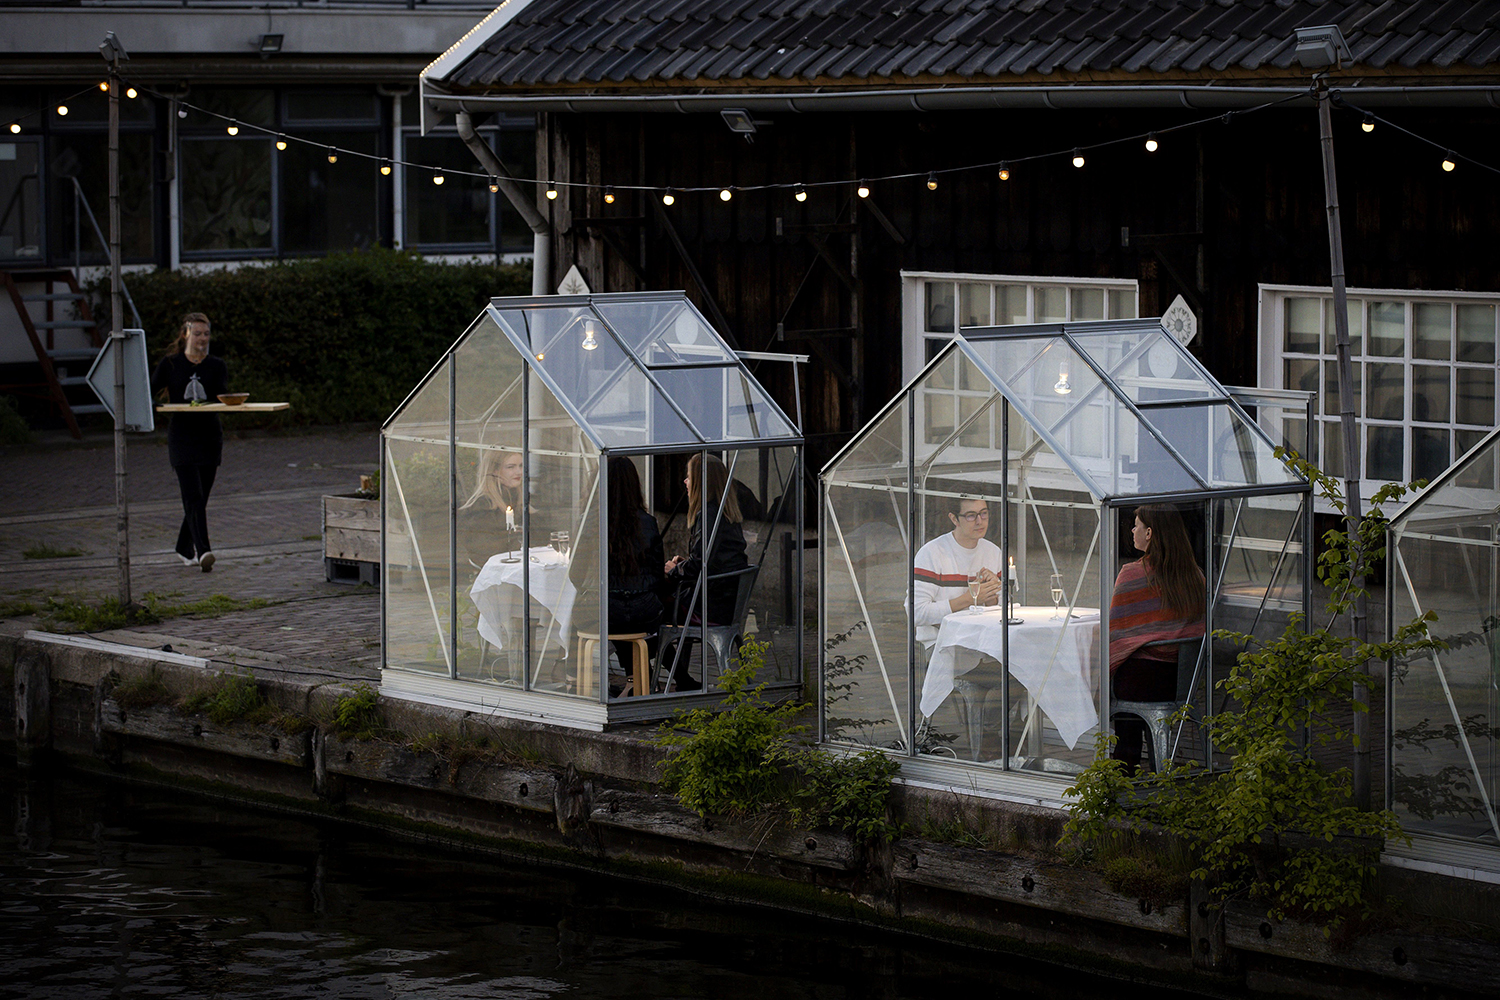 """People have dinner in a so-called """"quarantine greenhouses"""" at an Amsterdam restaurant May 5. ROBIN VAN LONKHUIJSEN/ANP/AFP via Getty Images"""